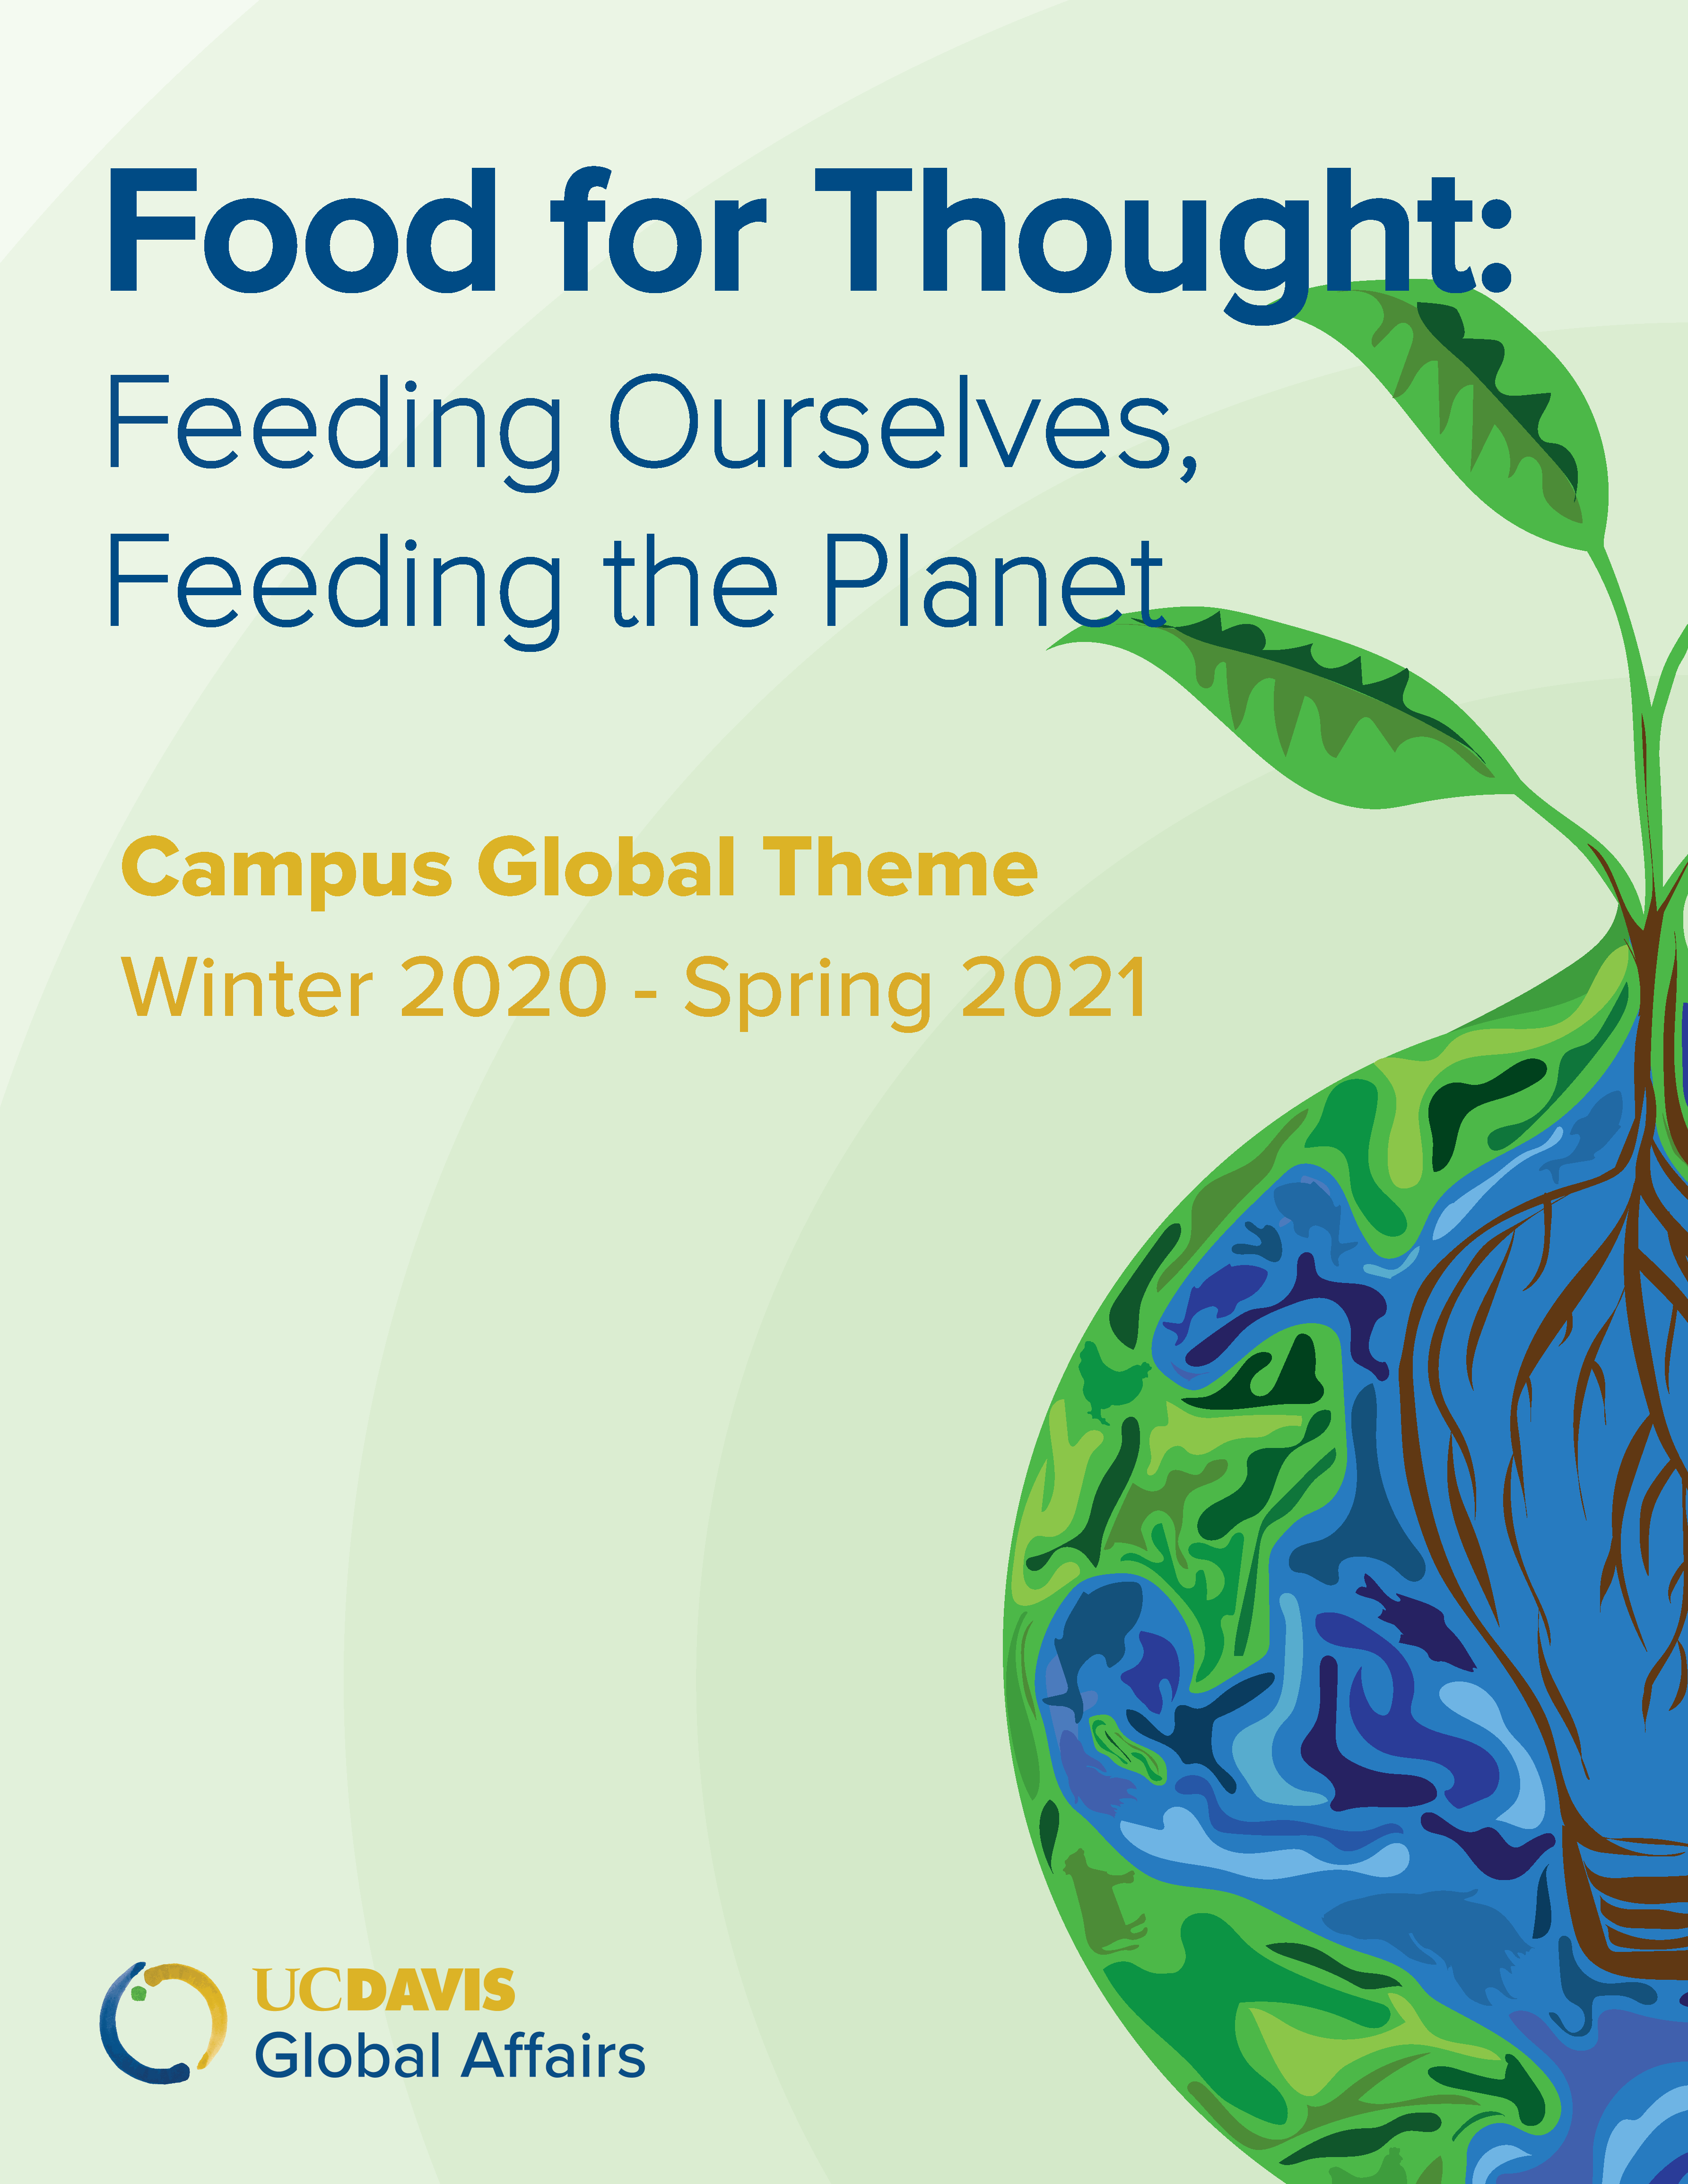 Campus Global Theme, Winter 2020-Spring 2021